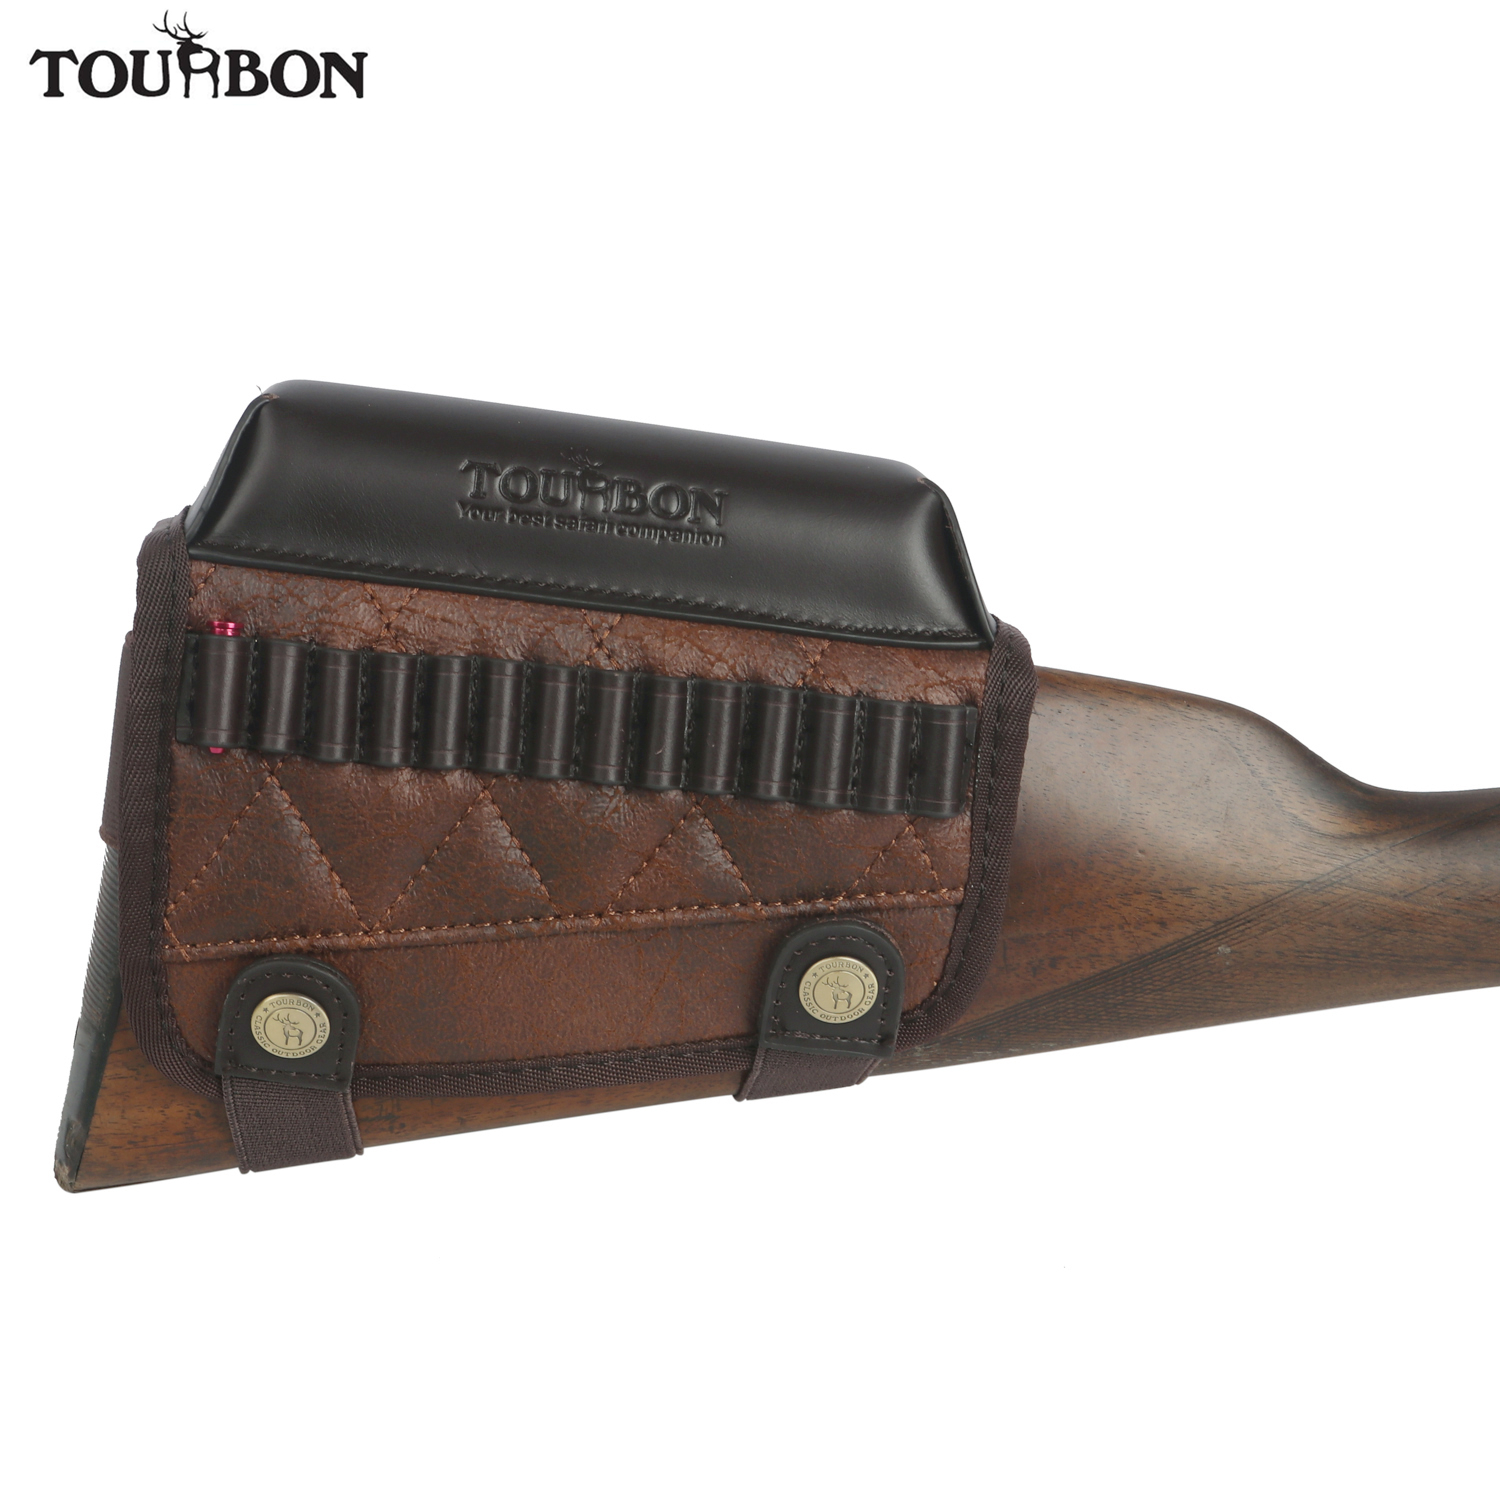 Tourbon Hunting Rimfire Rifle .22 LR /17 HMR Cartridges Bullet Ammo Holder Gun Buttstock Cheek Rest Riser Pad Shooting Accessory